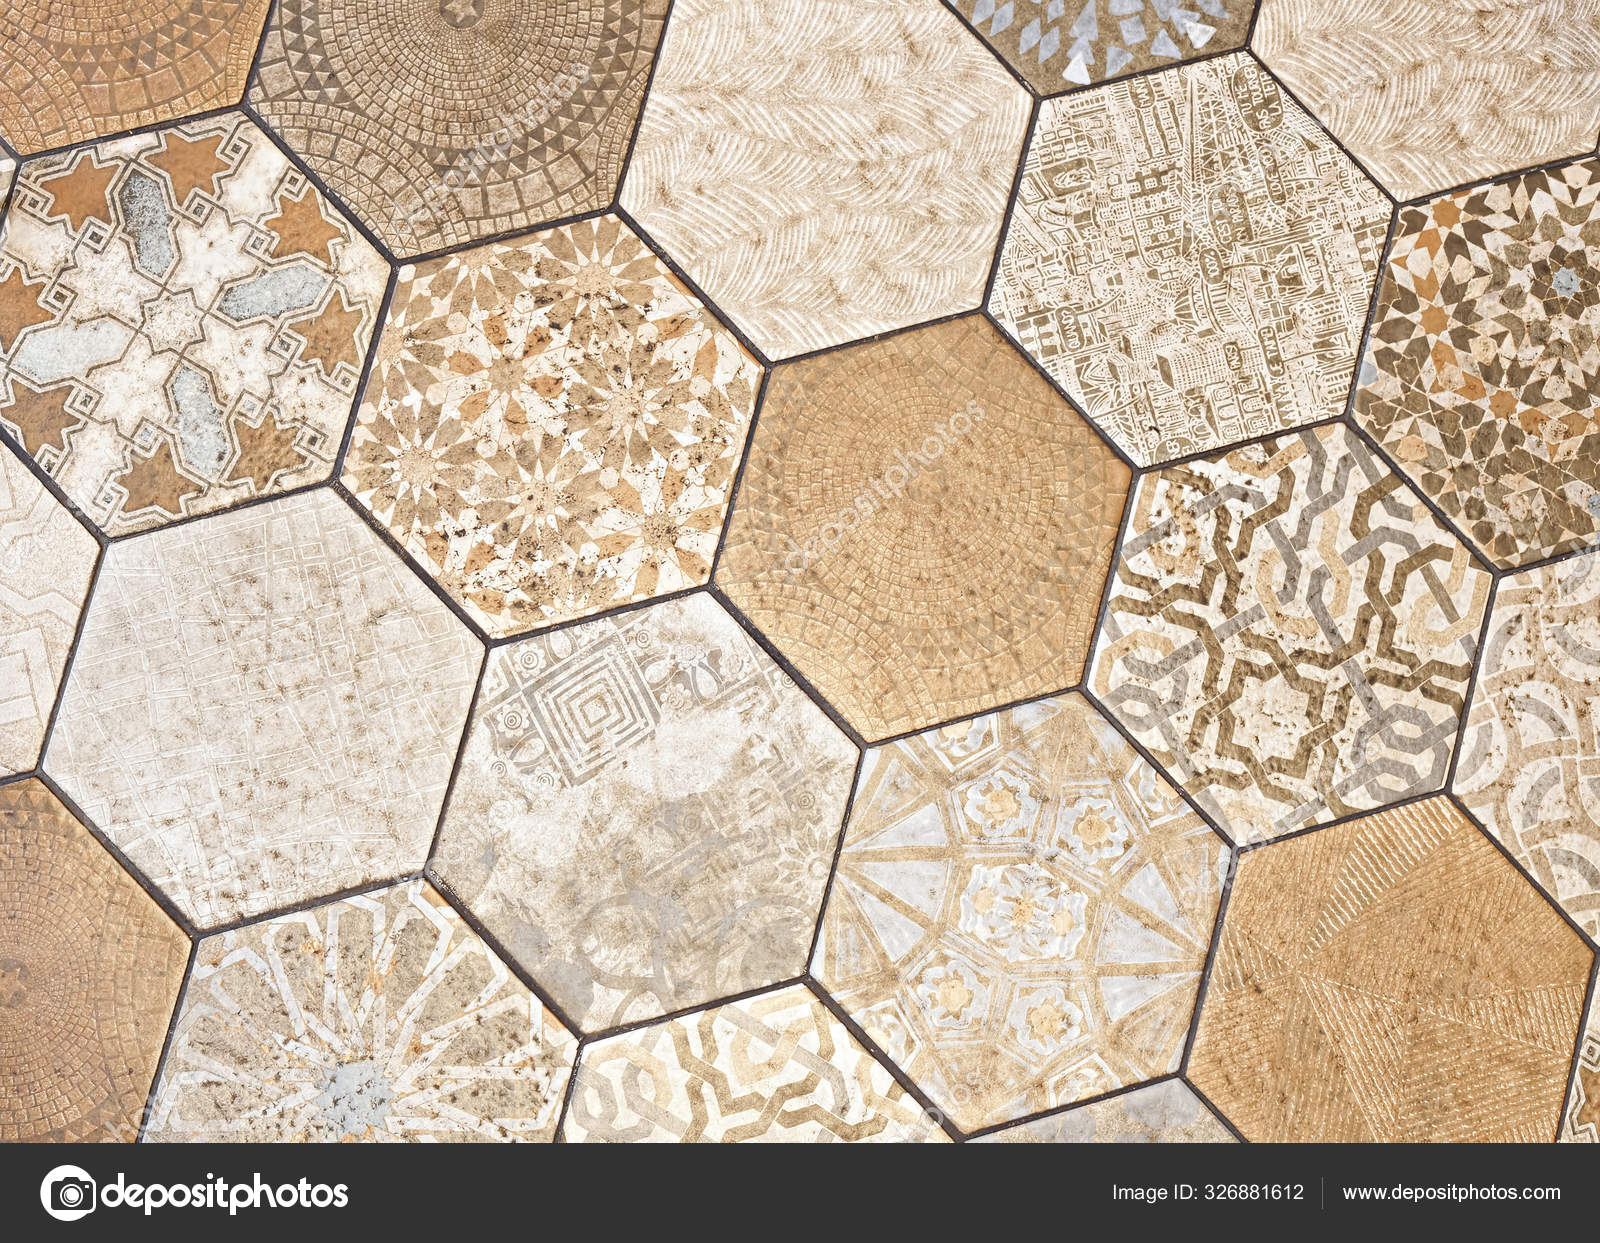 vintage rustic style hexagon tiles flooring background stock photo image by c miriristic gmail com 326881612